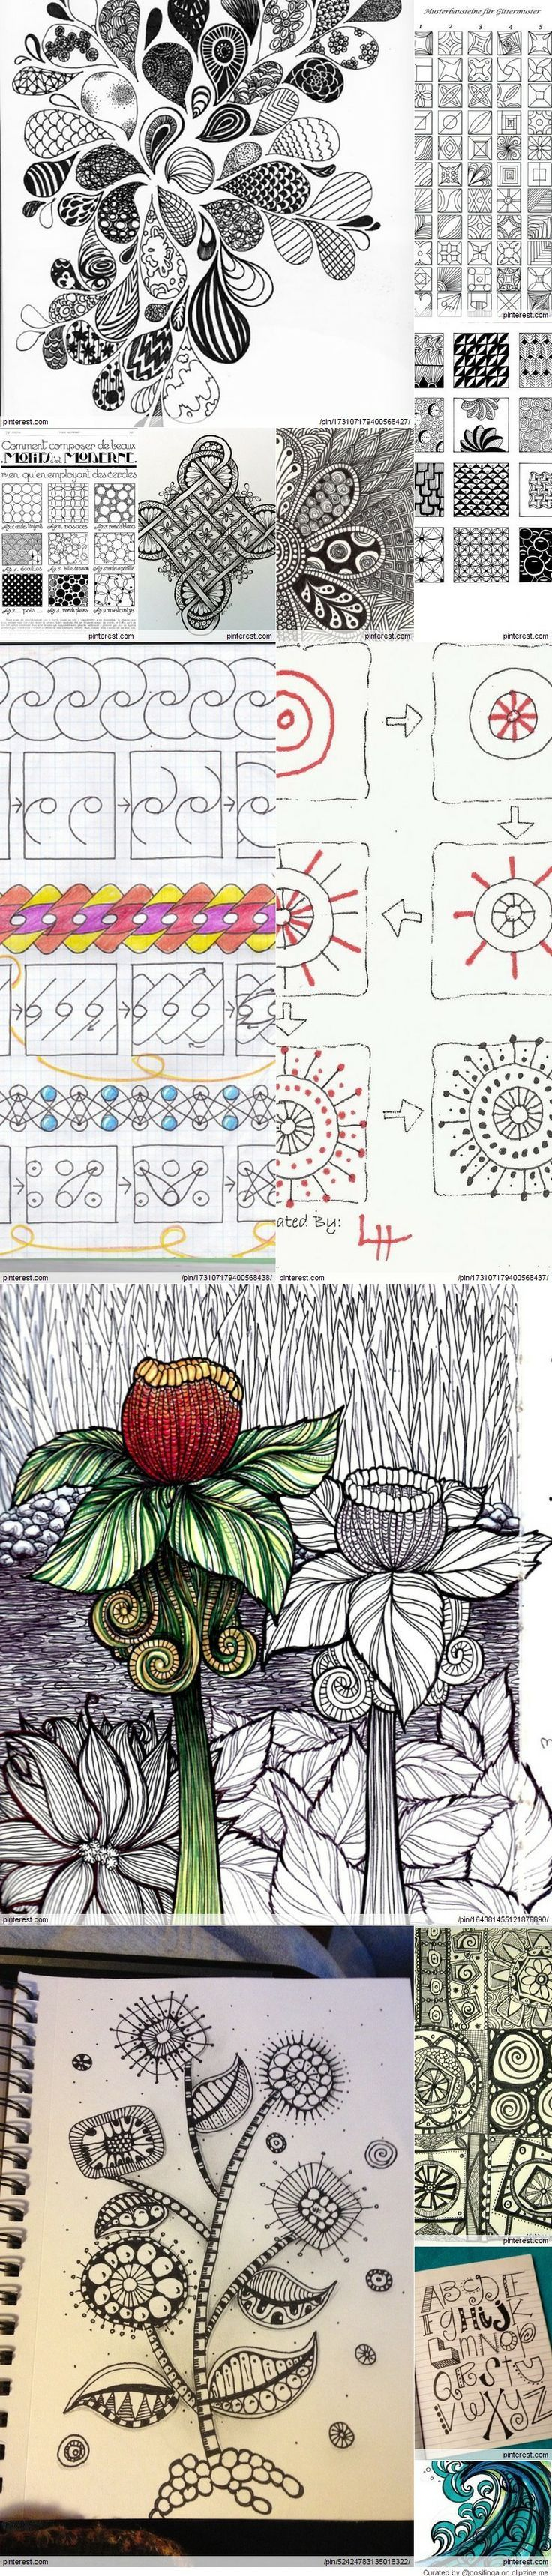 zentangle and doodle: